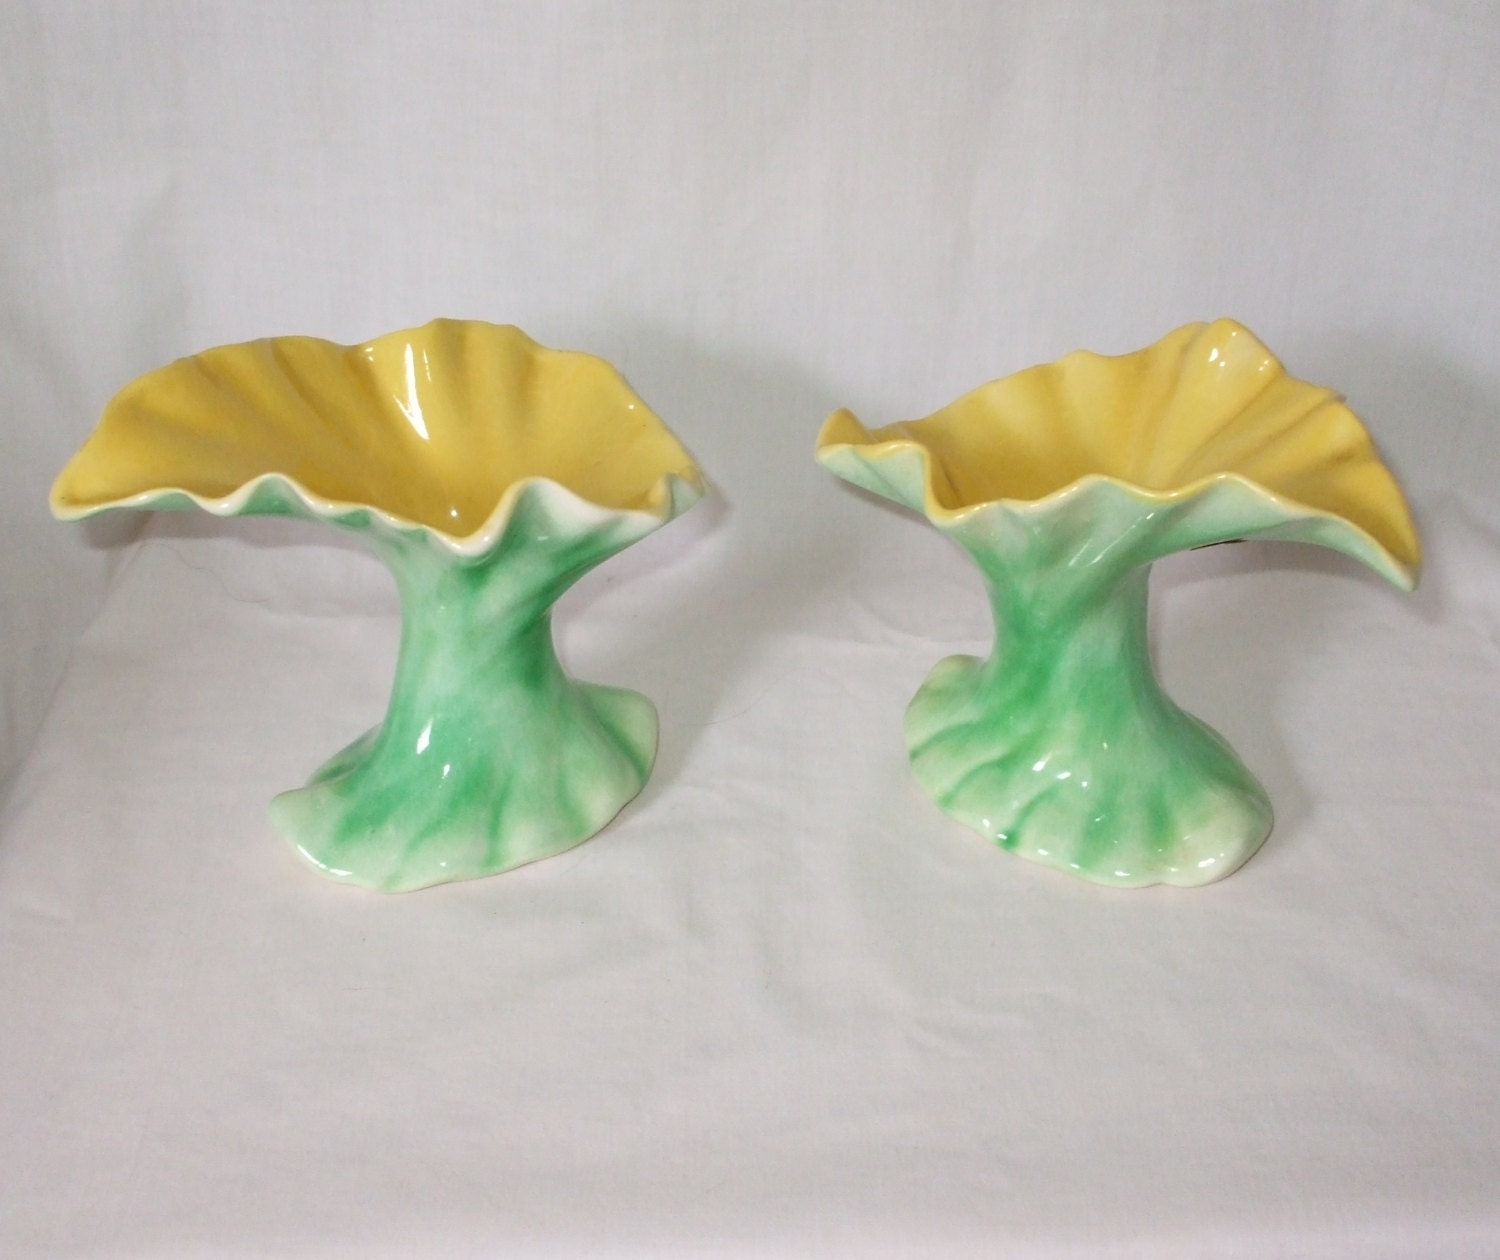 Vase pair acanthus leaf vases 1940s home decor green yellow by for Acanthus leaf decoration